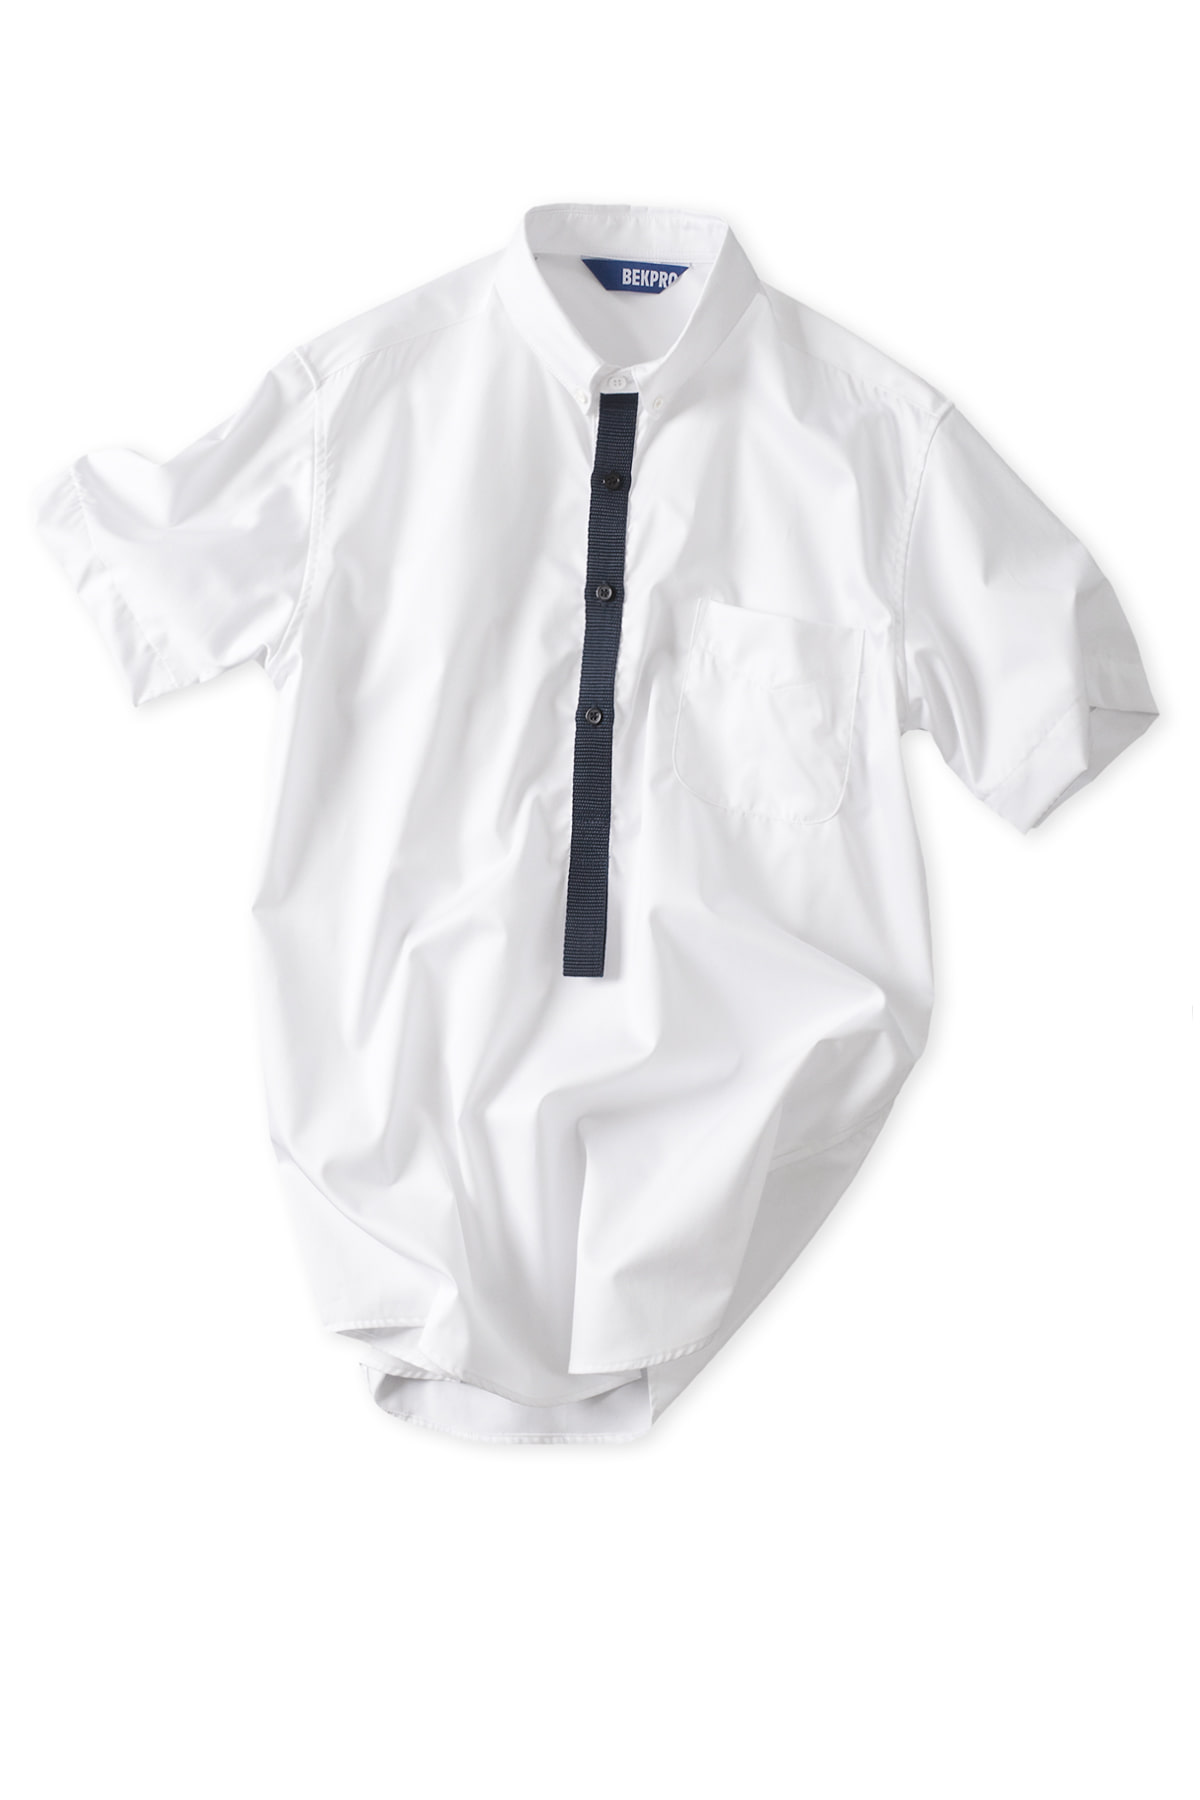 BEKPRO : SS Pullover Shirt (White)